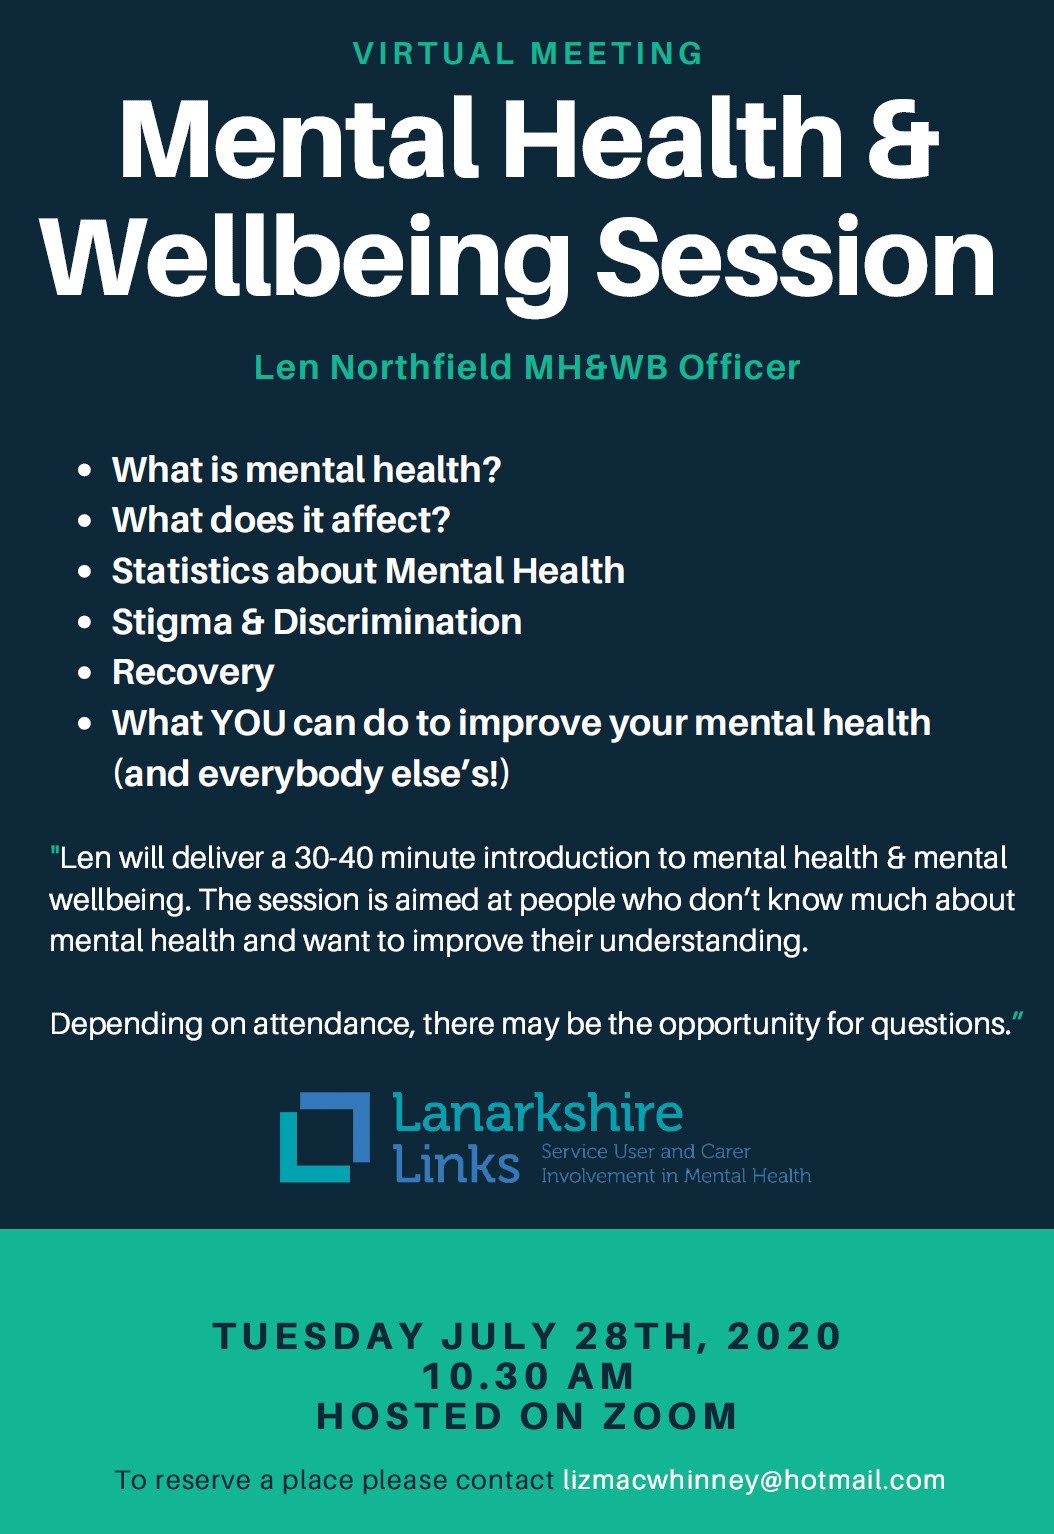 Virtual Meeting – Mental Health & Wellbeing Session